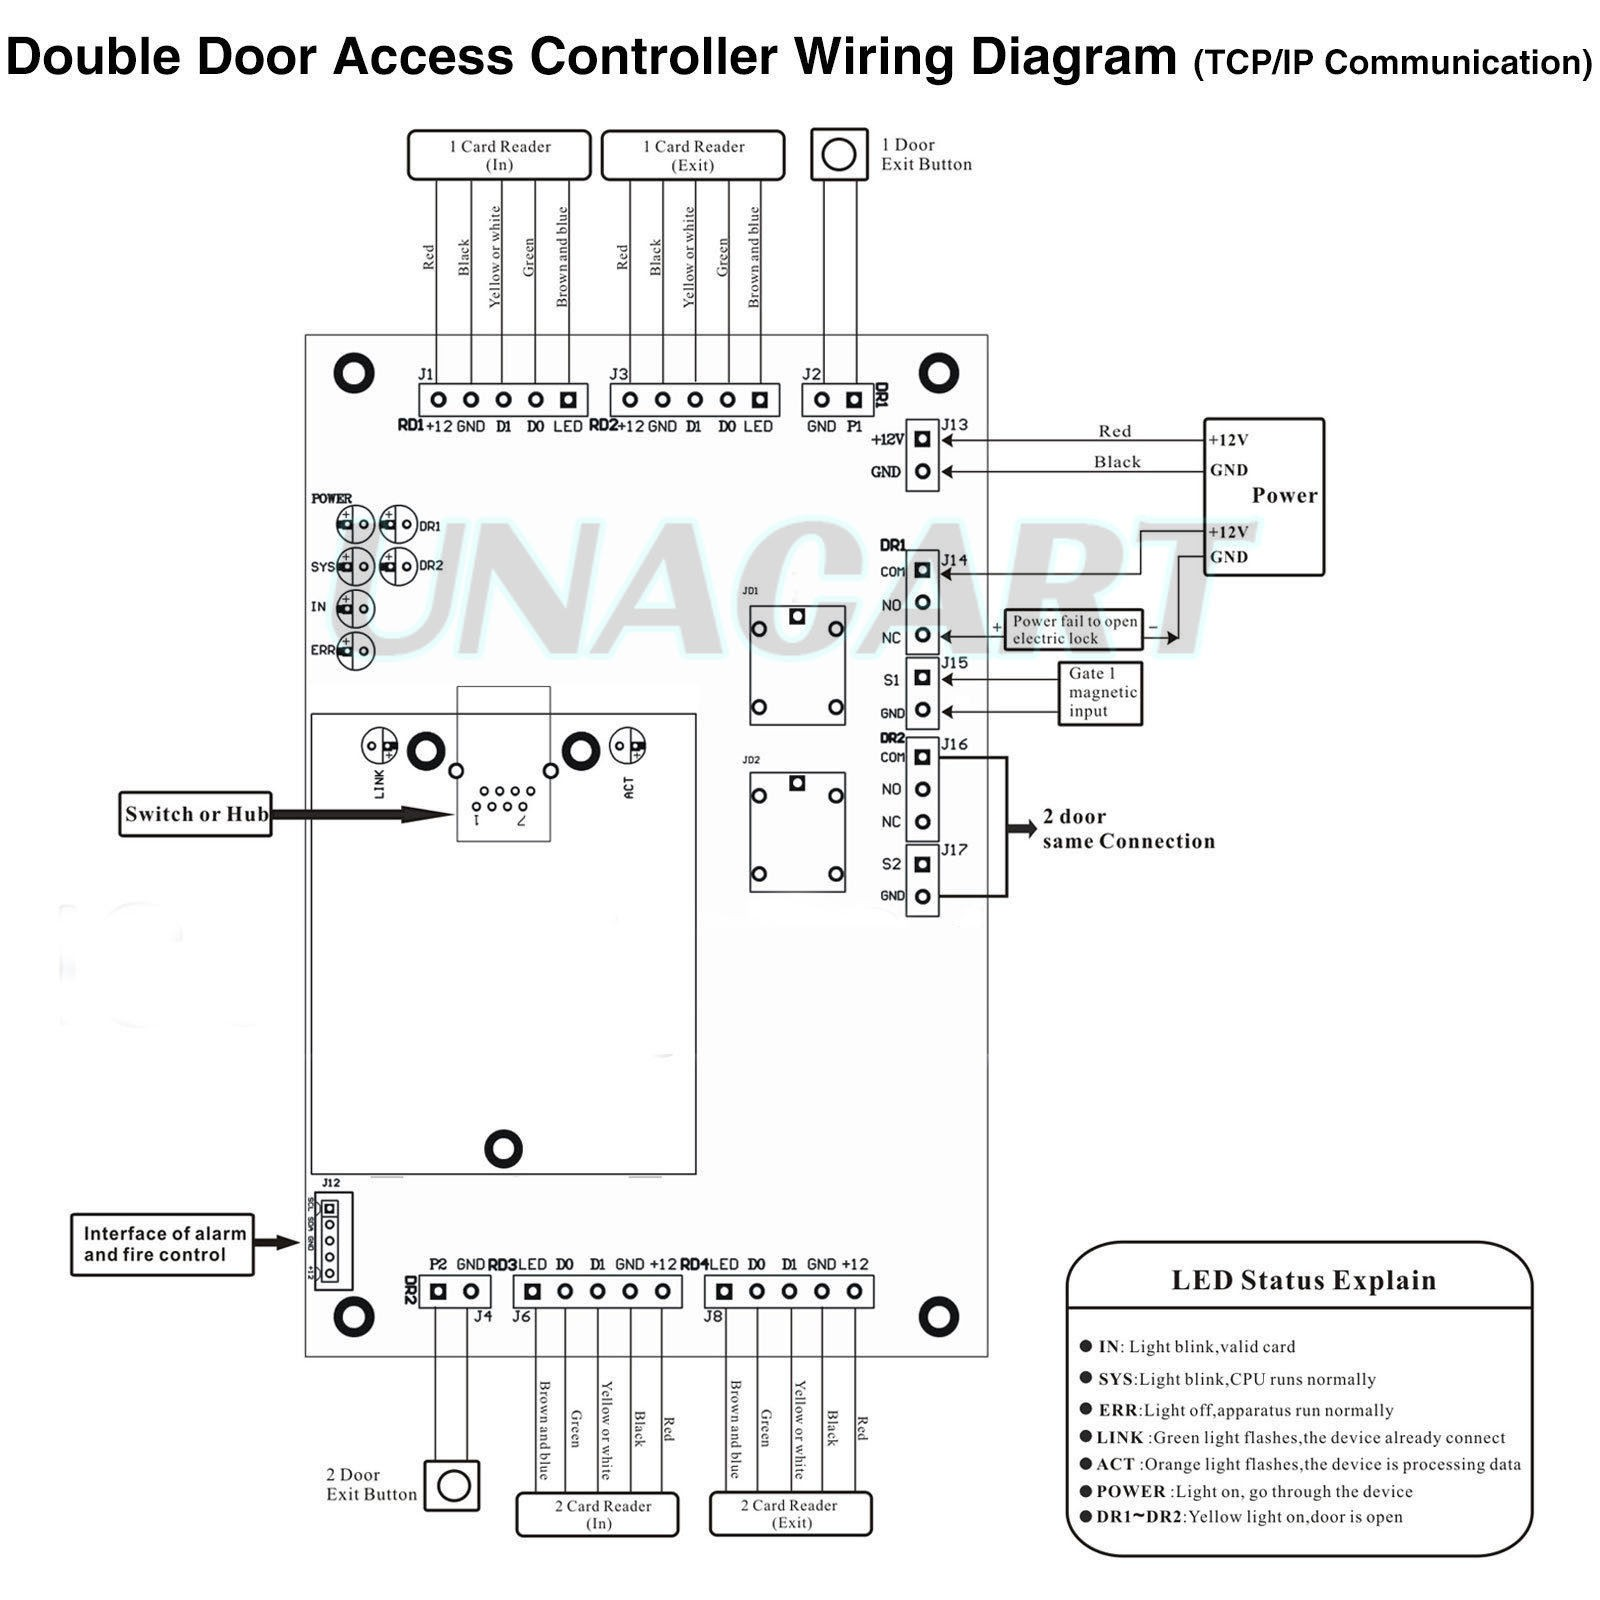 Hid Prox Reader Wiring Diagram 26 Bit Tcp Ip Network Access Control Board Panel Controller for 2 Of Hid Prox Reader Wiring Diagram